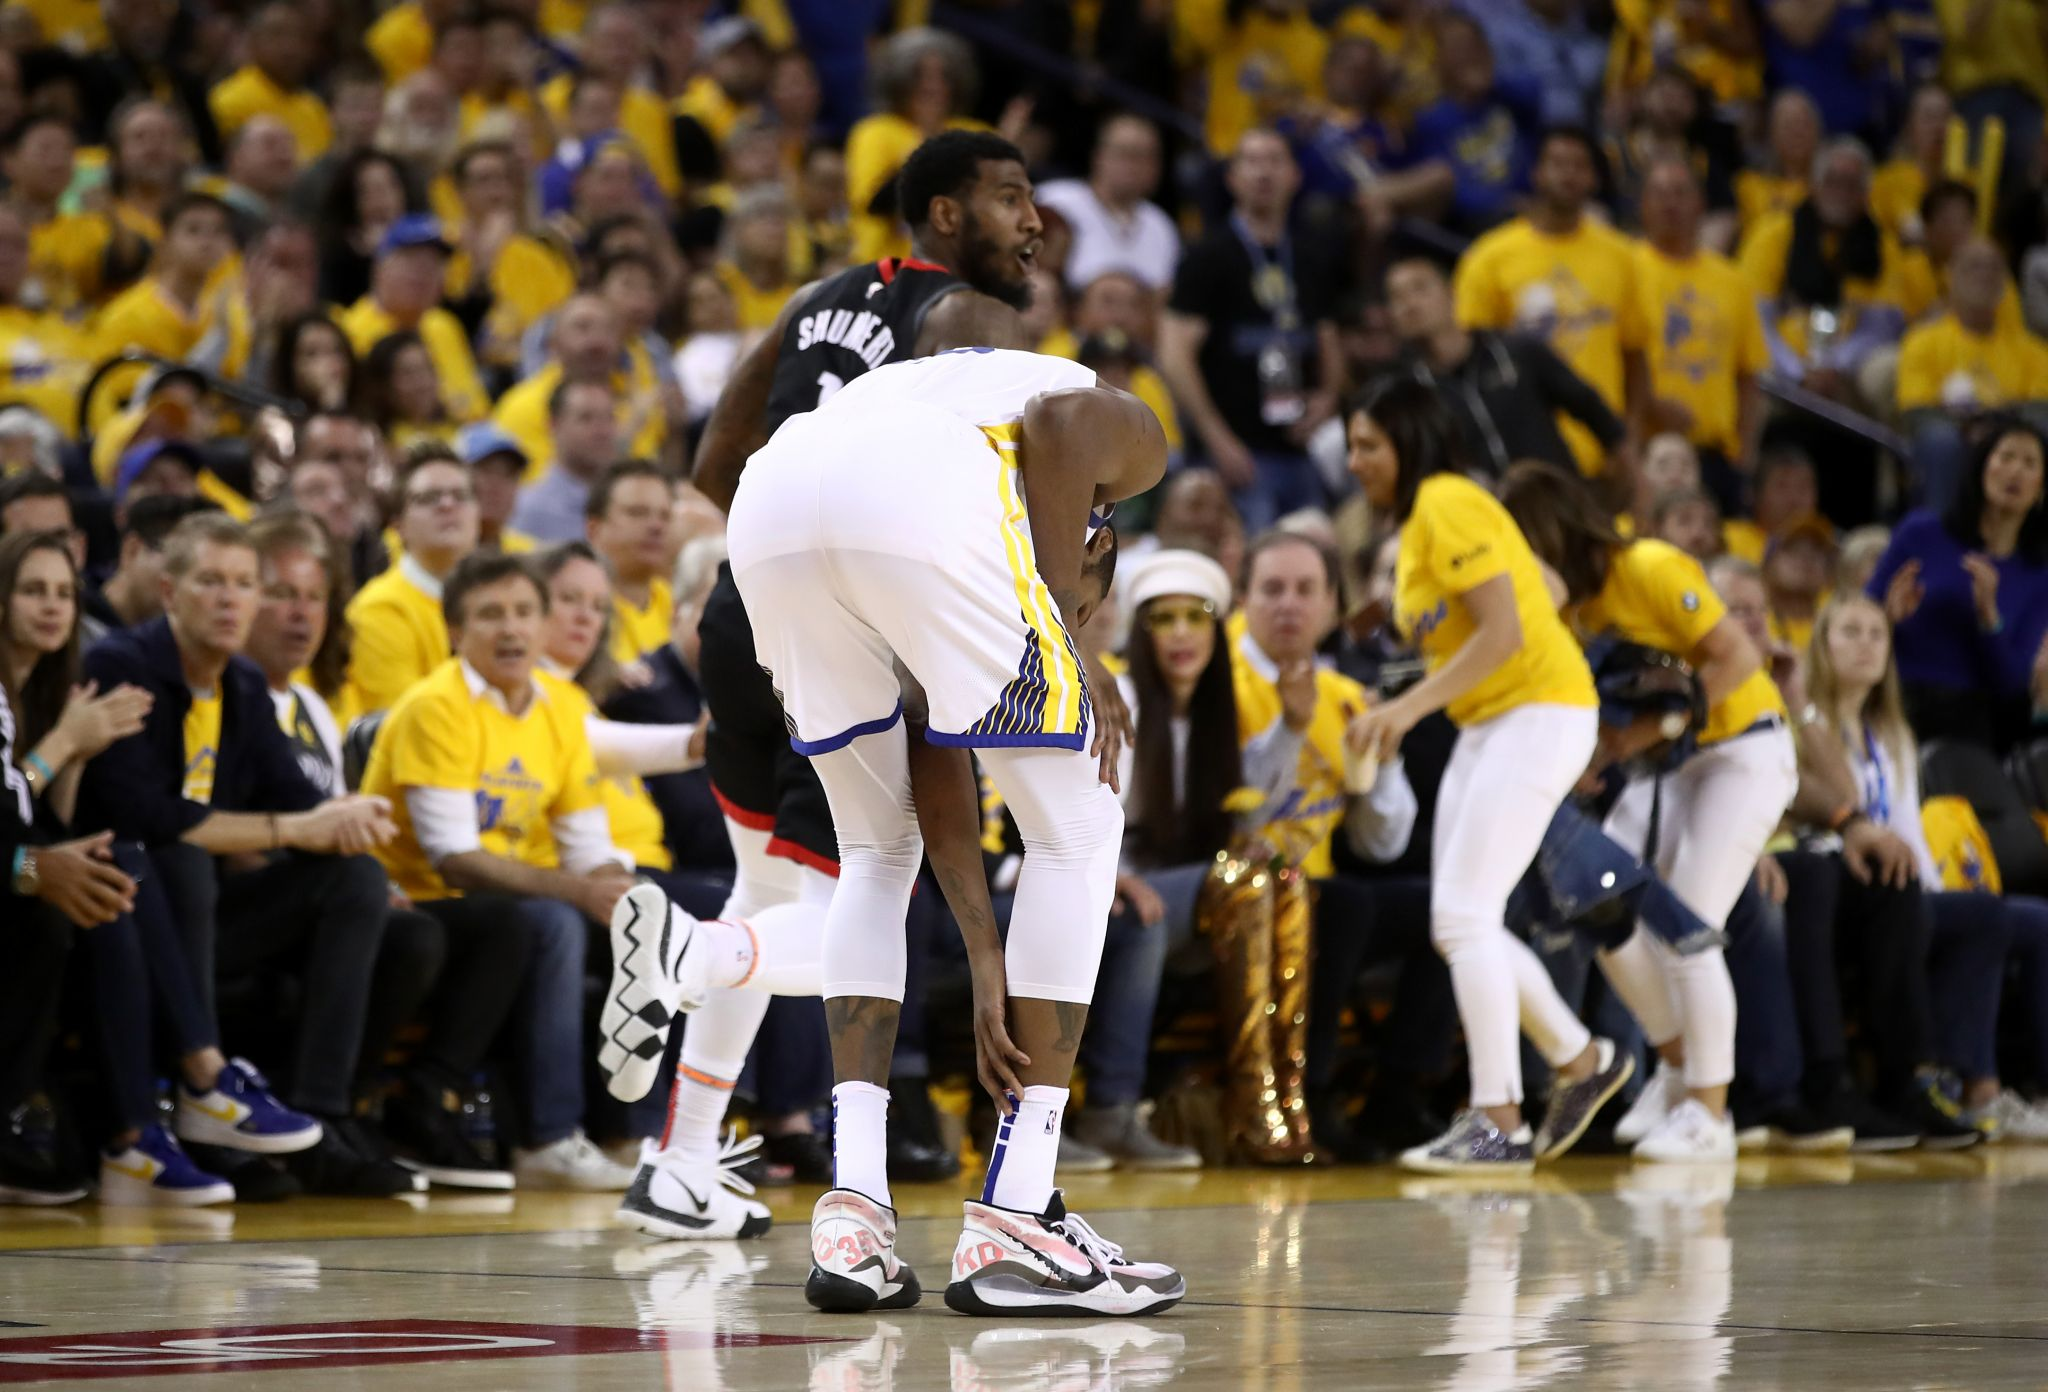 Rockets' Iman Shumpert concerned if he caused injury on play Kevin Durant was hurt